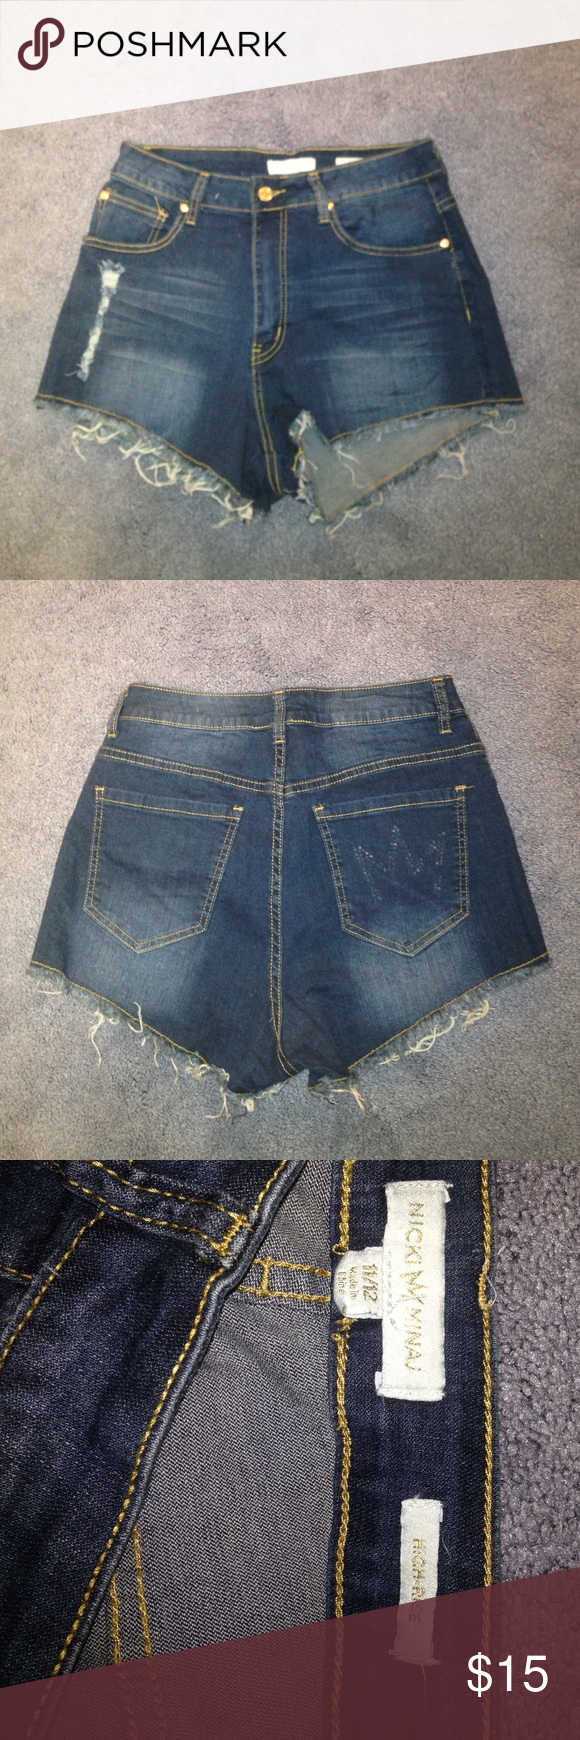 High waisted nicki Minaj shorts These shorts have only been worn about 3 times. They fit really well they are stretchy and not to tight around the waist. The back pocket has had the rhinestones come off but isn't too noticeable Shorts Jean Shorts